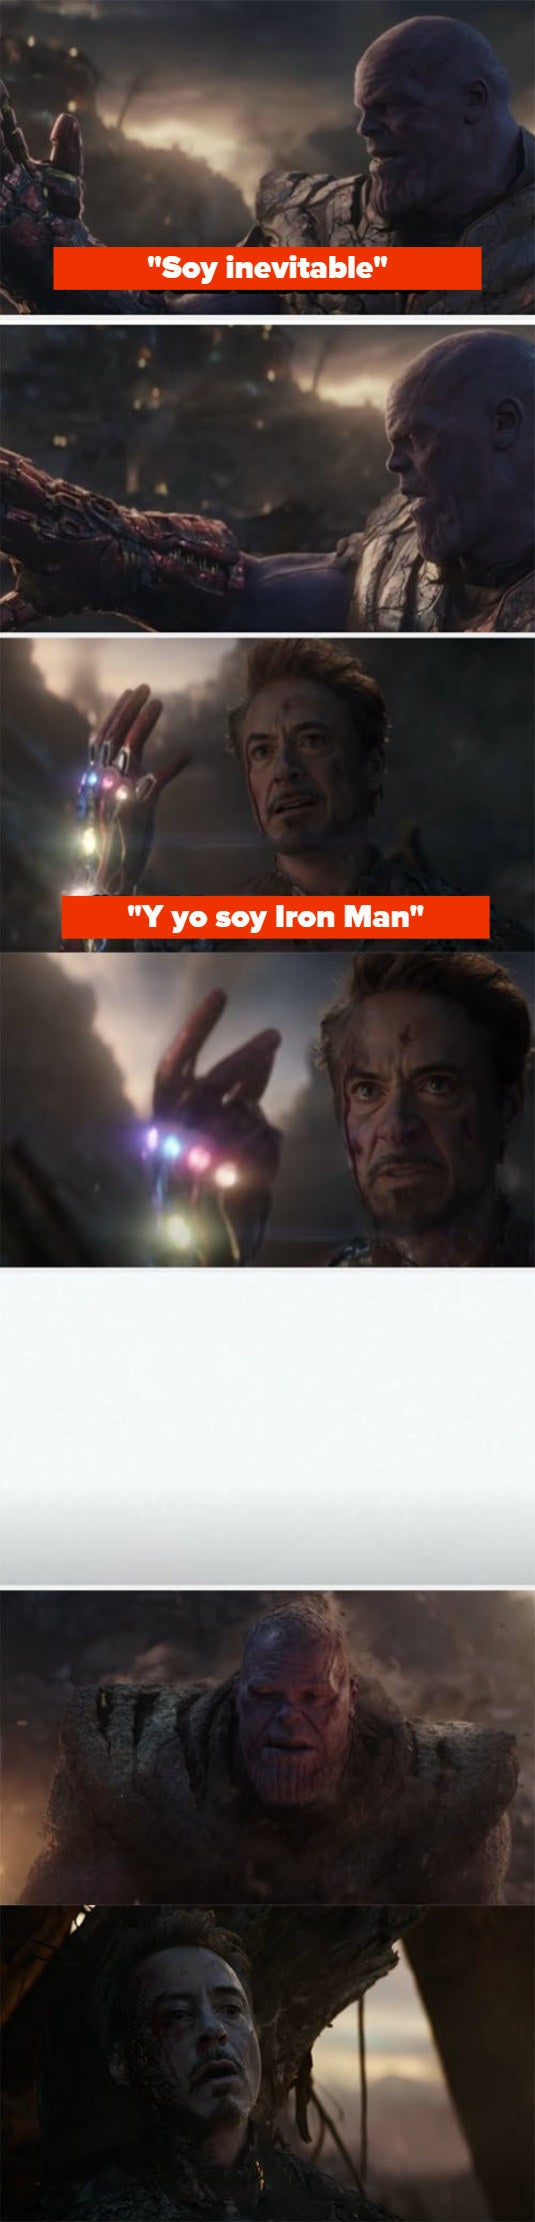 """Thanos failing to snap and Iron Man snapping before he dies on """"Avengers: Endgame"""""""